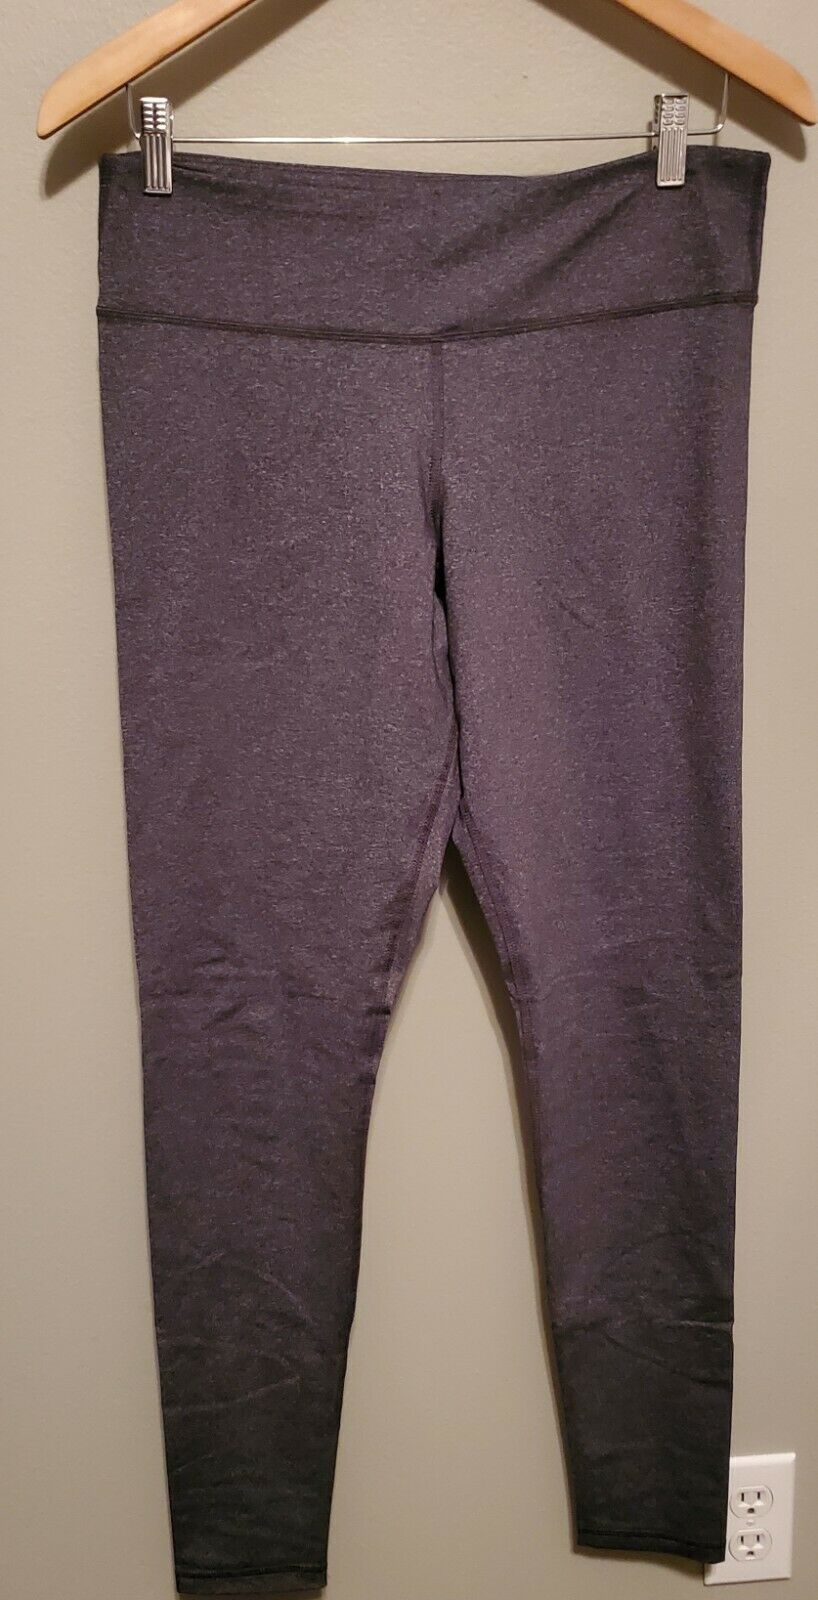 Old Navy Compression Leggings - Gray - Never Worn - Size L